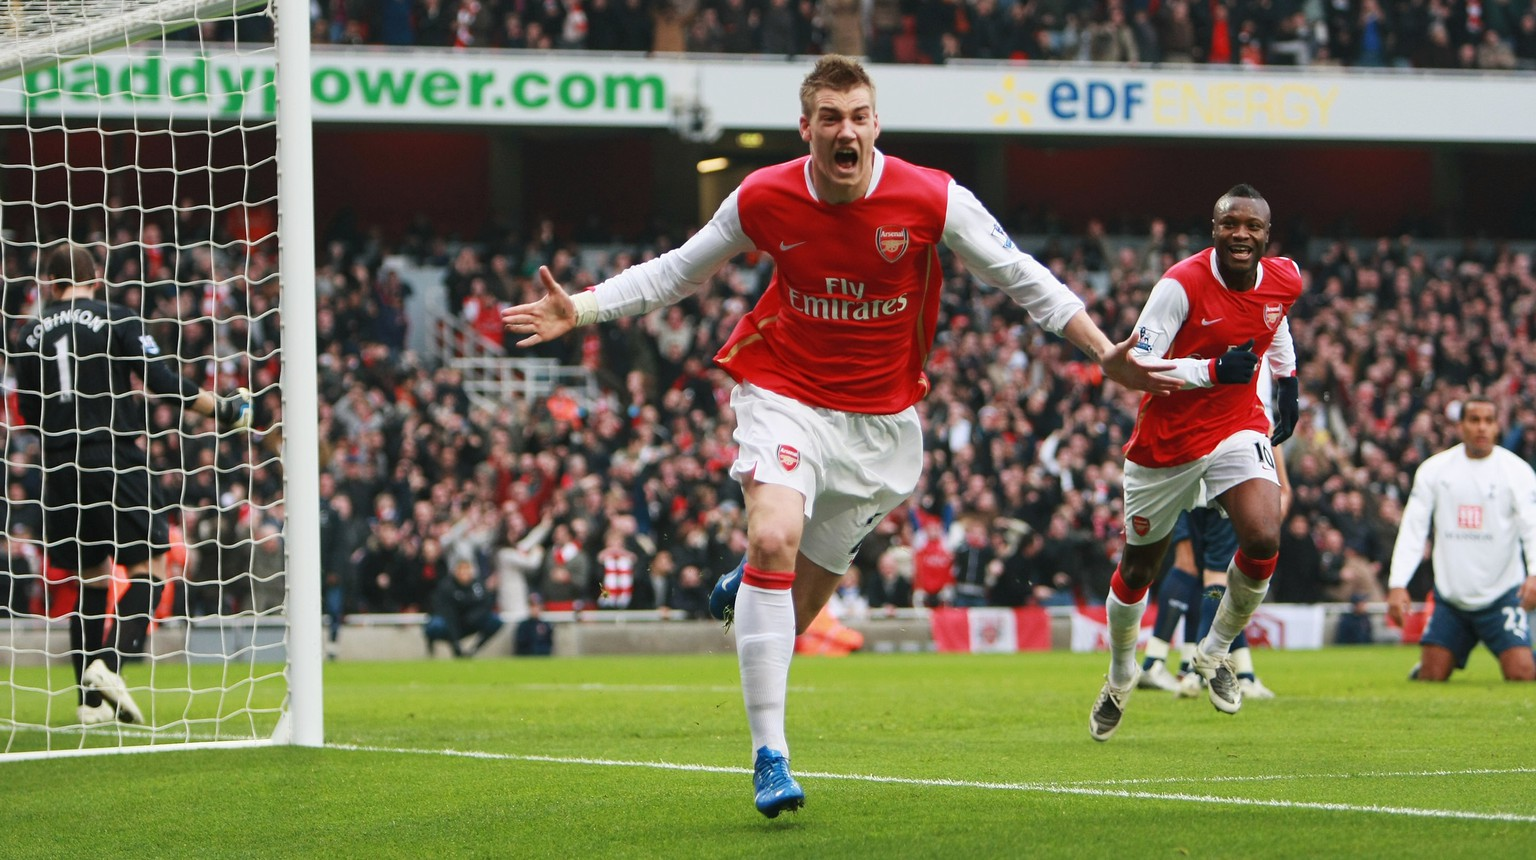 LONDON - DECEMBER 22:  Nicklas Bendtner of Arsenal (C) celebrates as he scores their second goal during the Barclays Premier League match between Arsenal and Tottenham Hotspur at the Emirates Stadium on December 22, 2007 in London, England.  (Photo by Clive Mason/Getty Images)